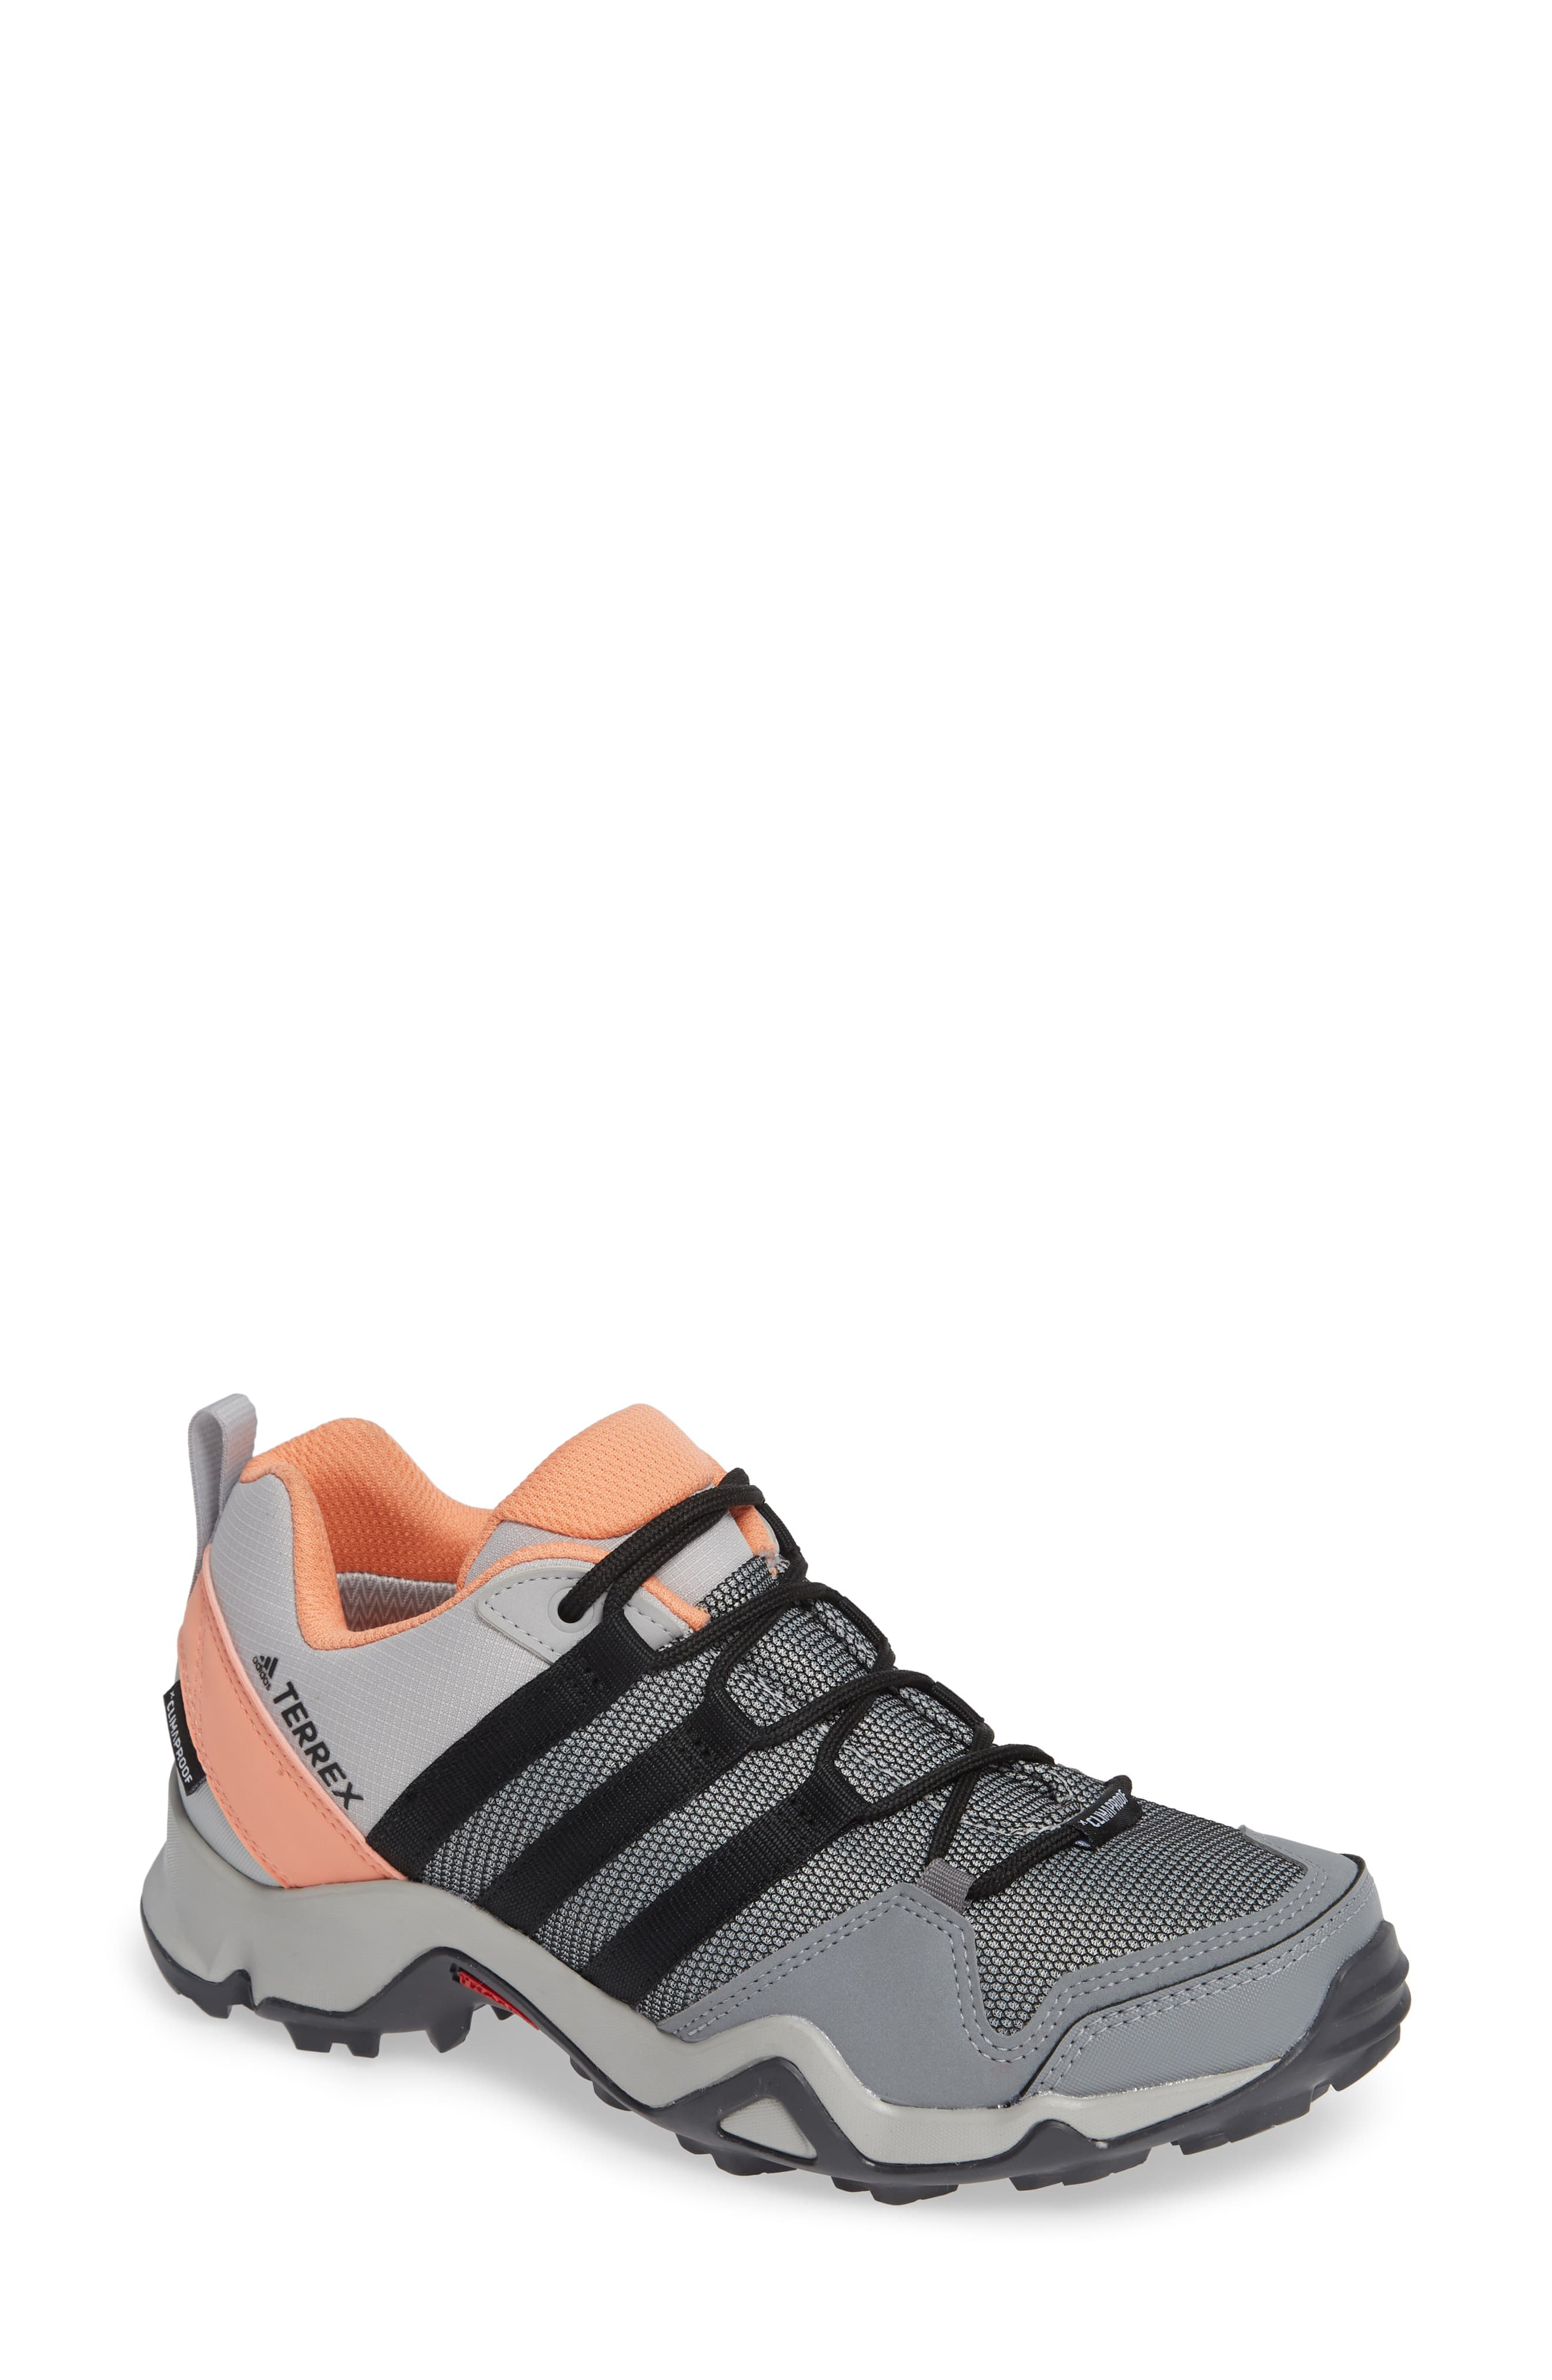 What Is The M In Shoe Size.Women S Adidas Terrex Ax2 Climaproof Hiking Shoe Size 6 5 M